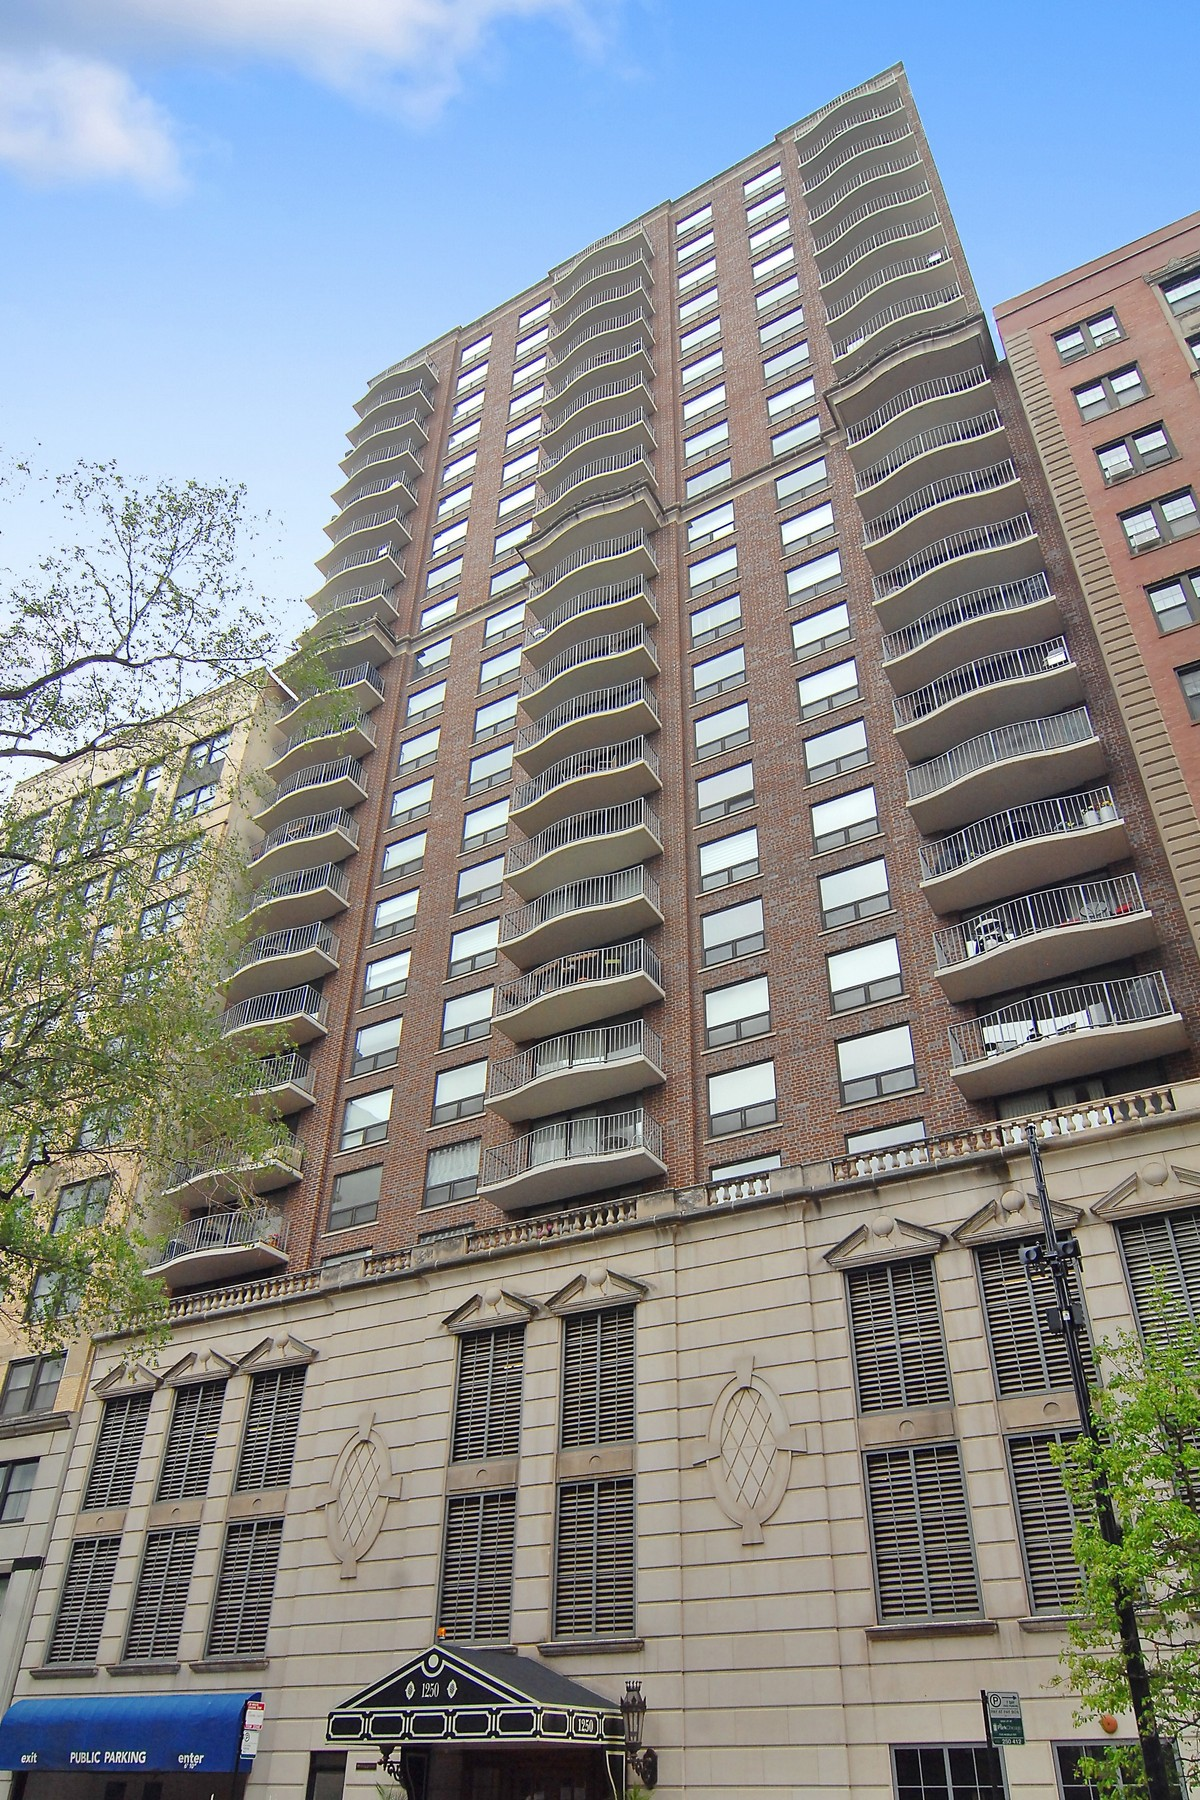 Condominium for Sale at Immaculate Unit in Fantastic Location 1250 N Dearborn Parkway Unit 5C Near North Side, Chicago, Illinois, 60610 United States